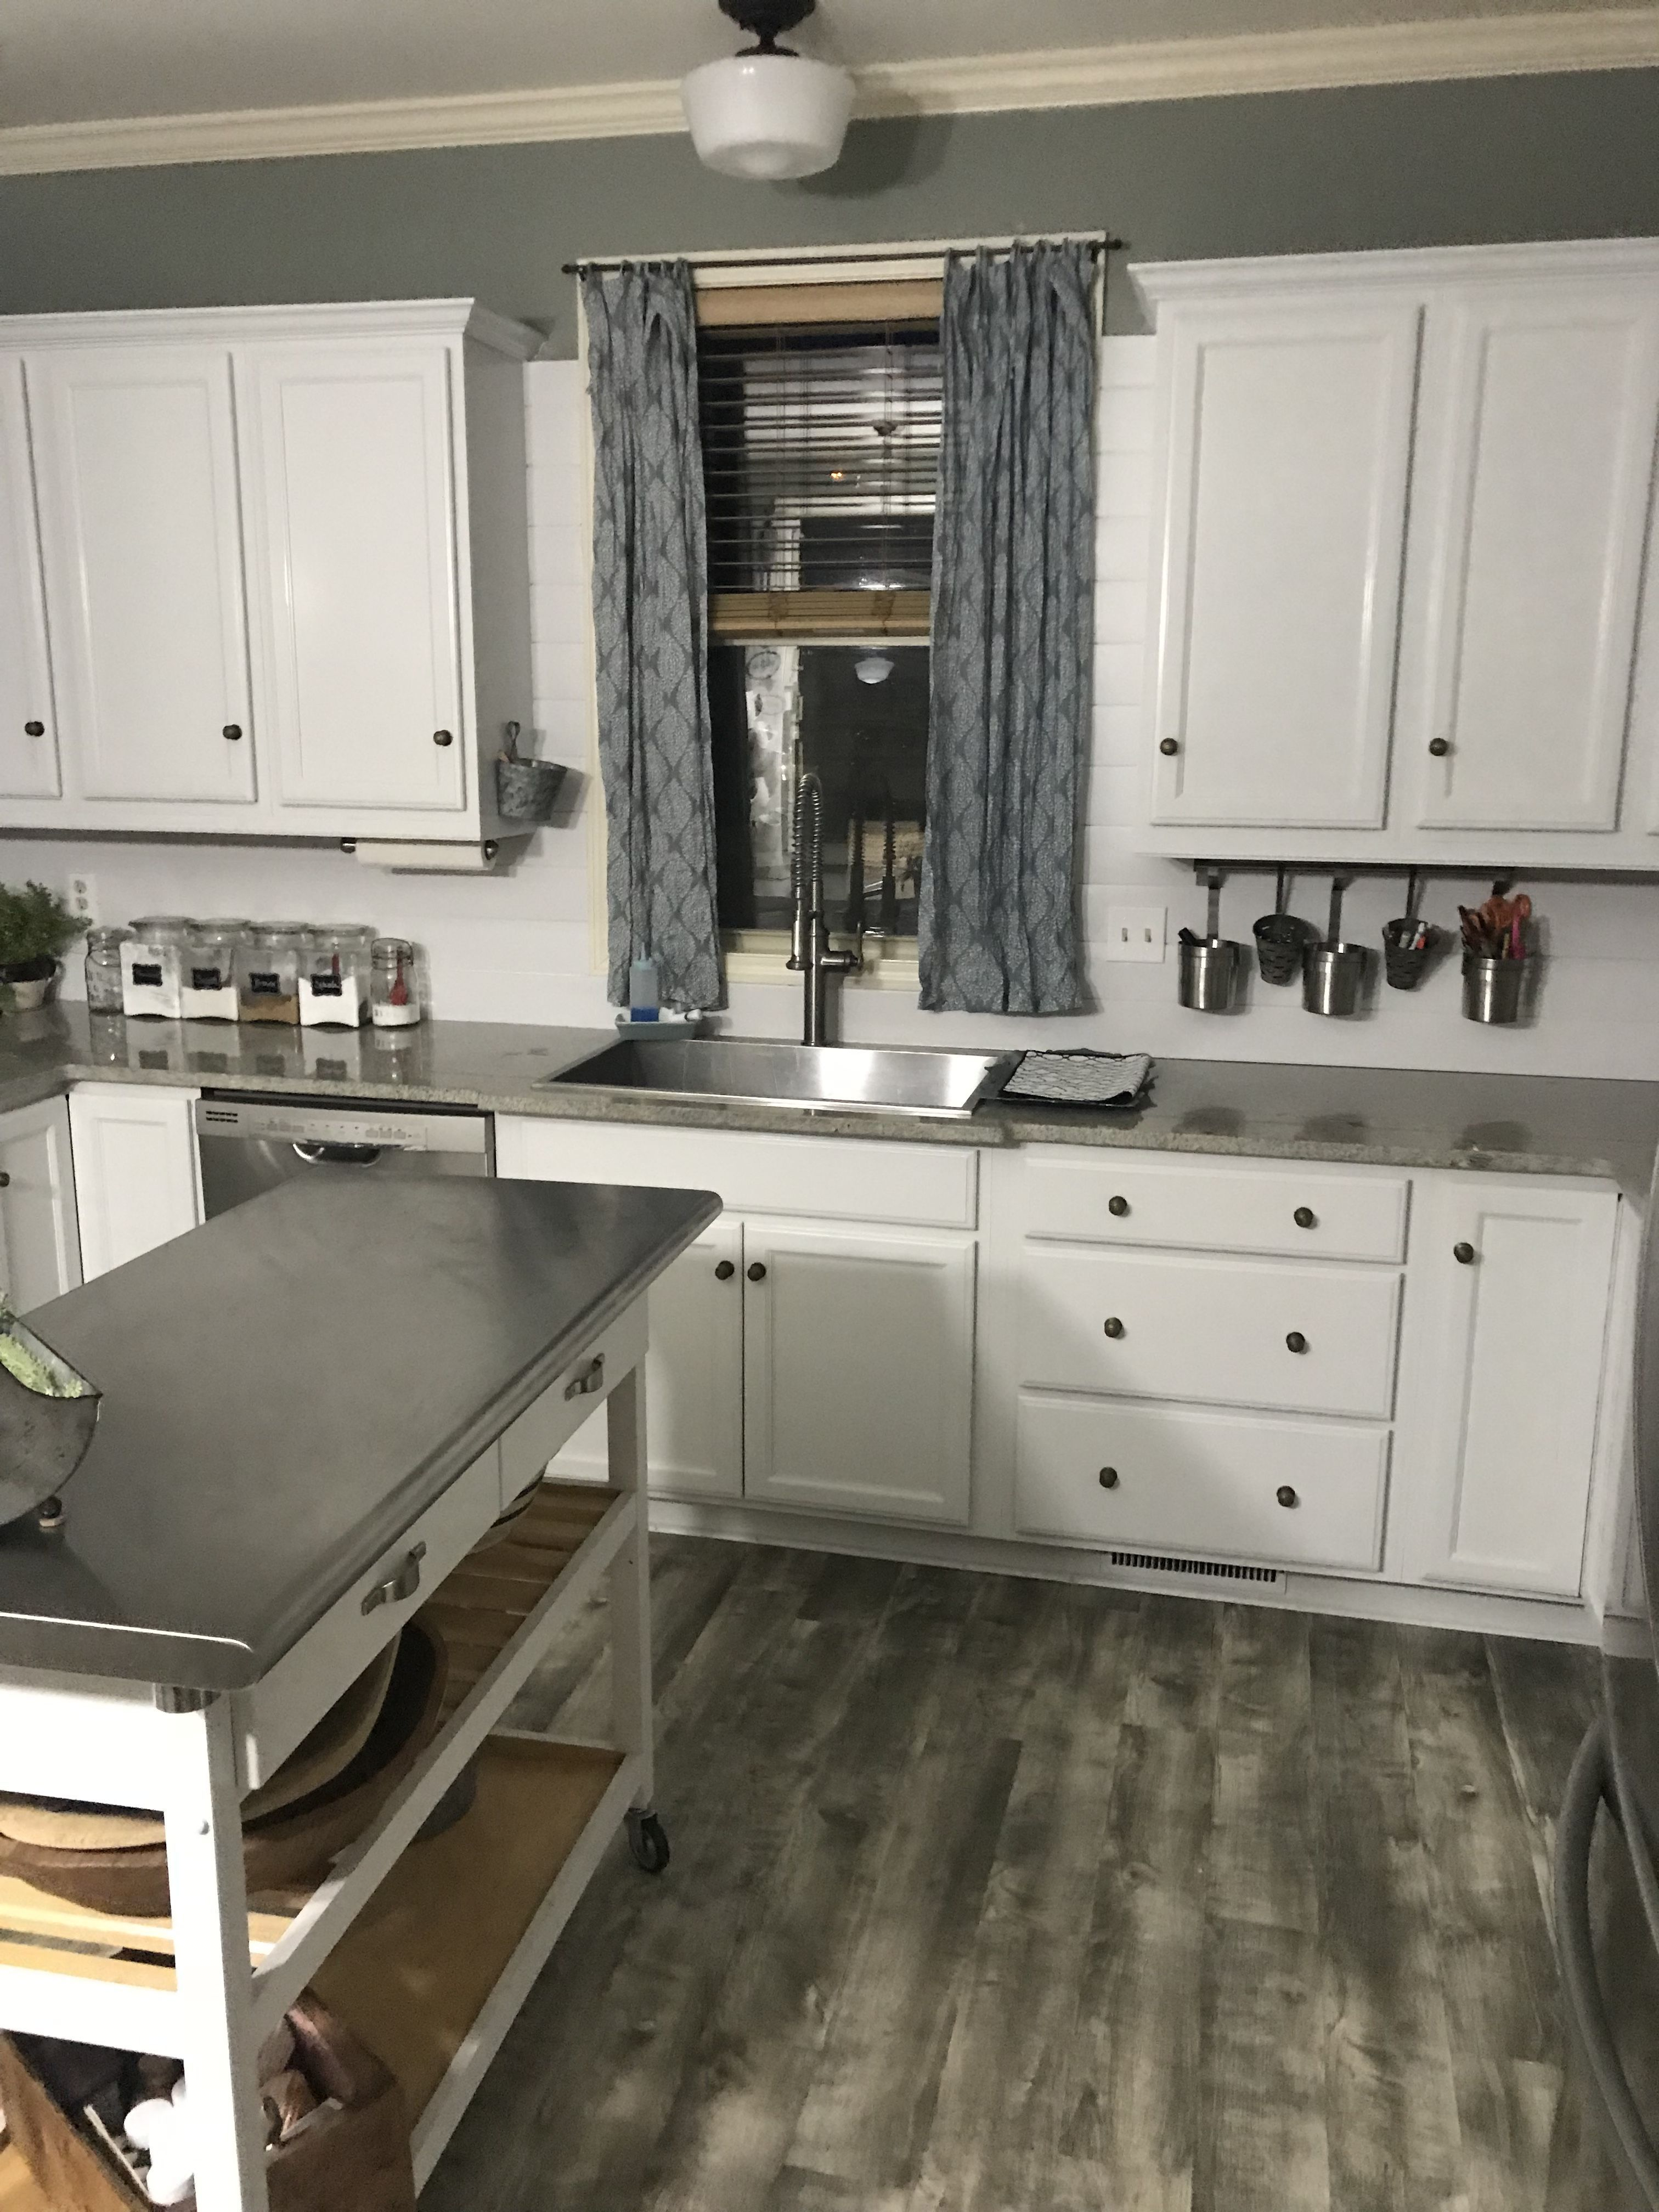 Kitchen Countertop No Backsplash Download Wooden Shiplap